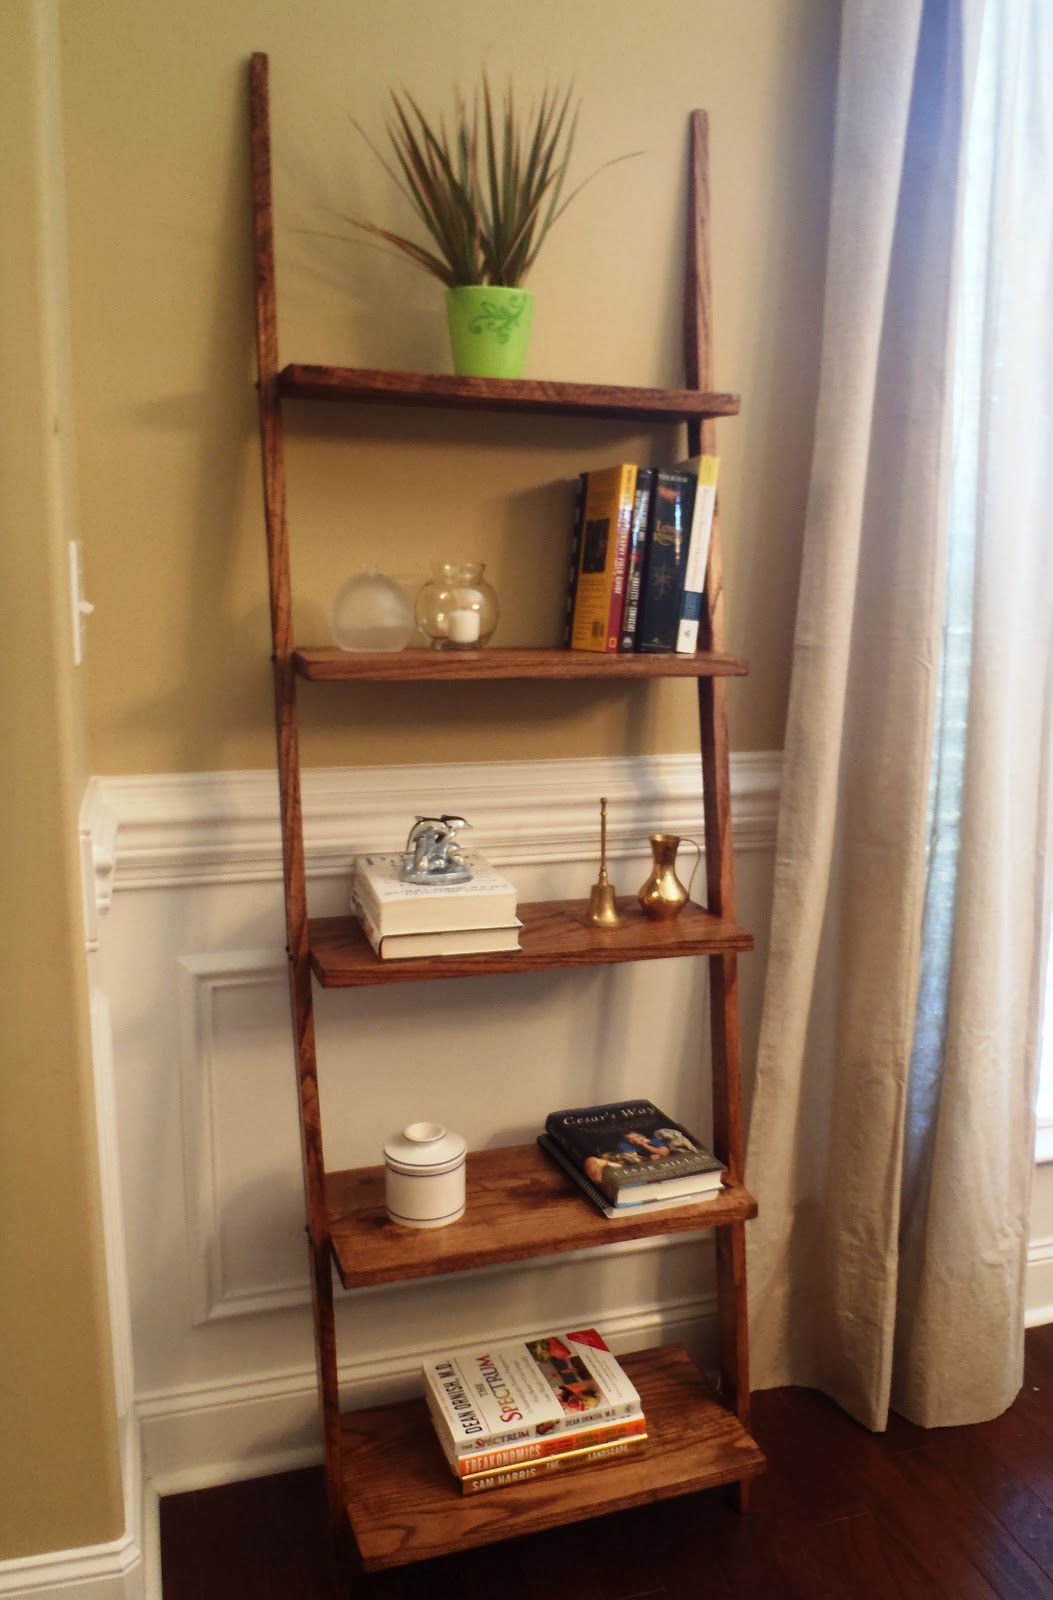 Lazy liz on less ladder shelves Where to put a bookcase in a room